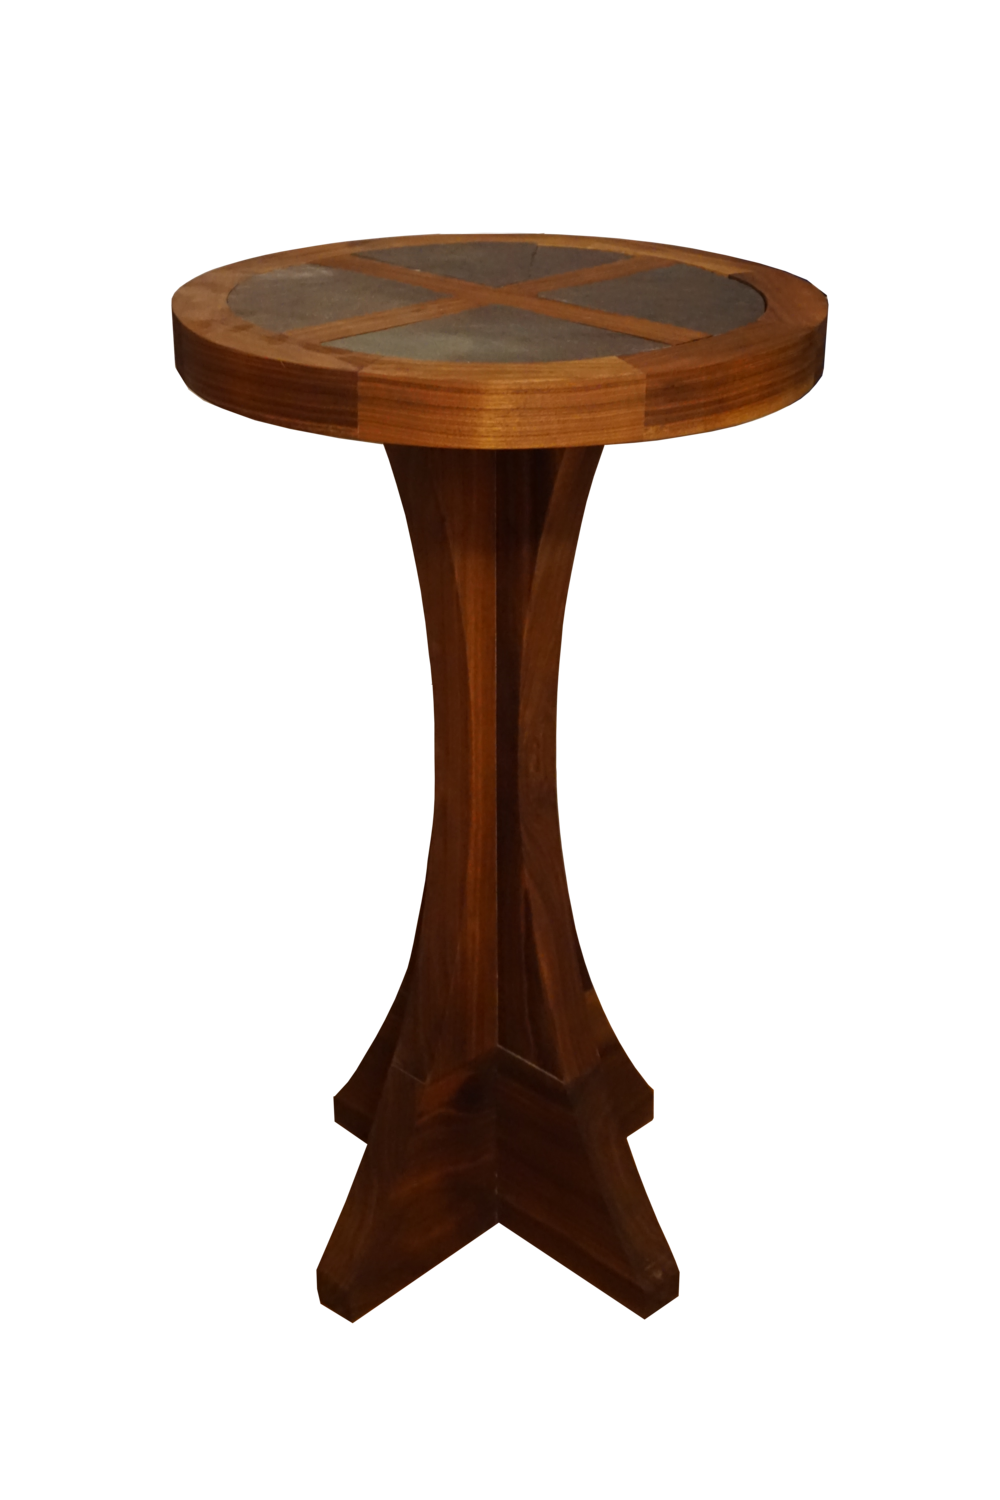 walnut table.png